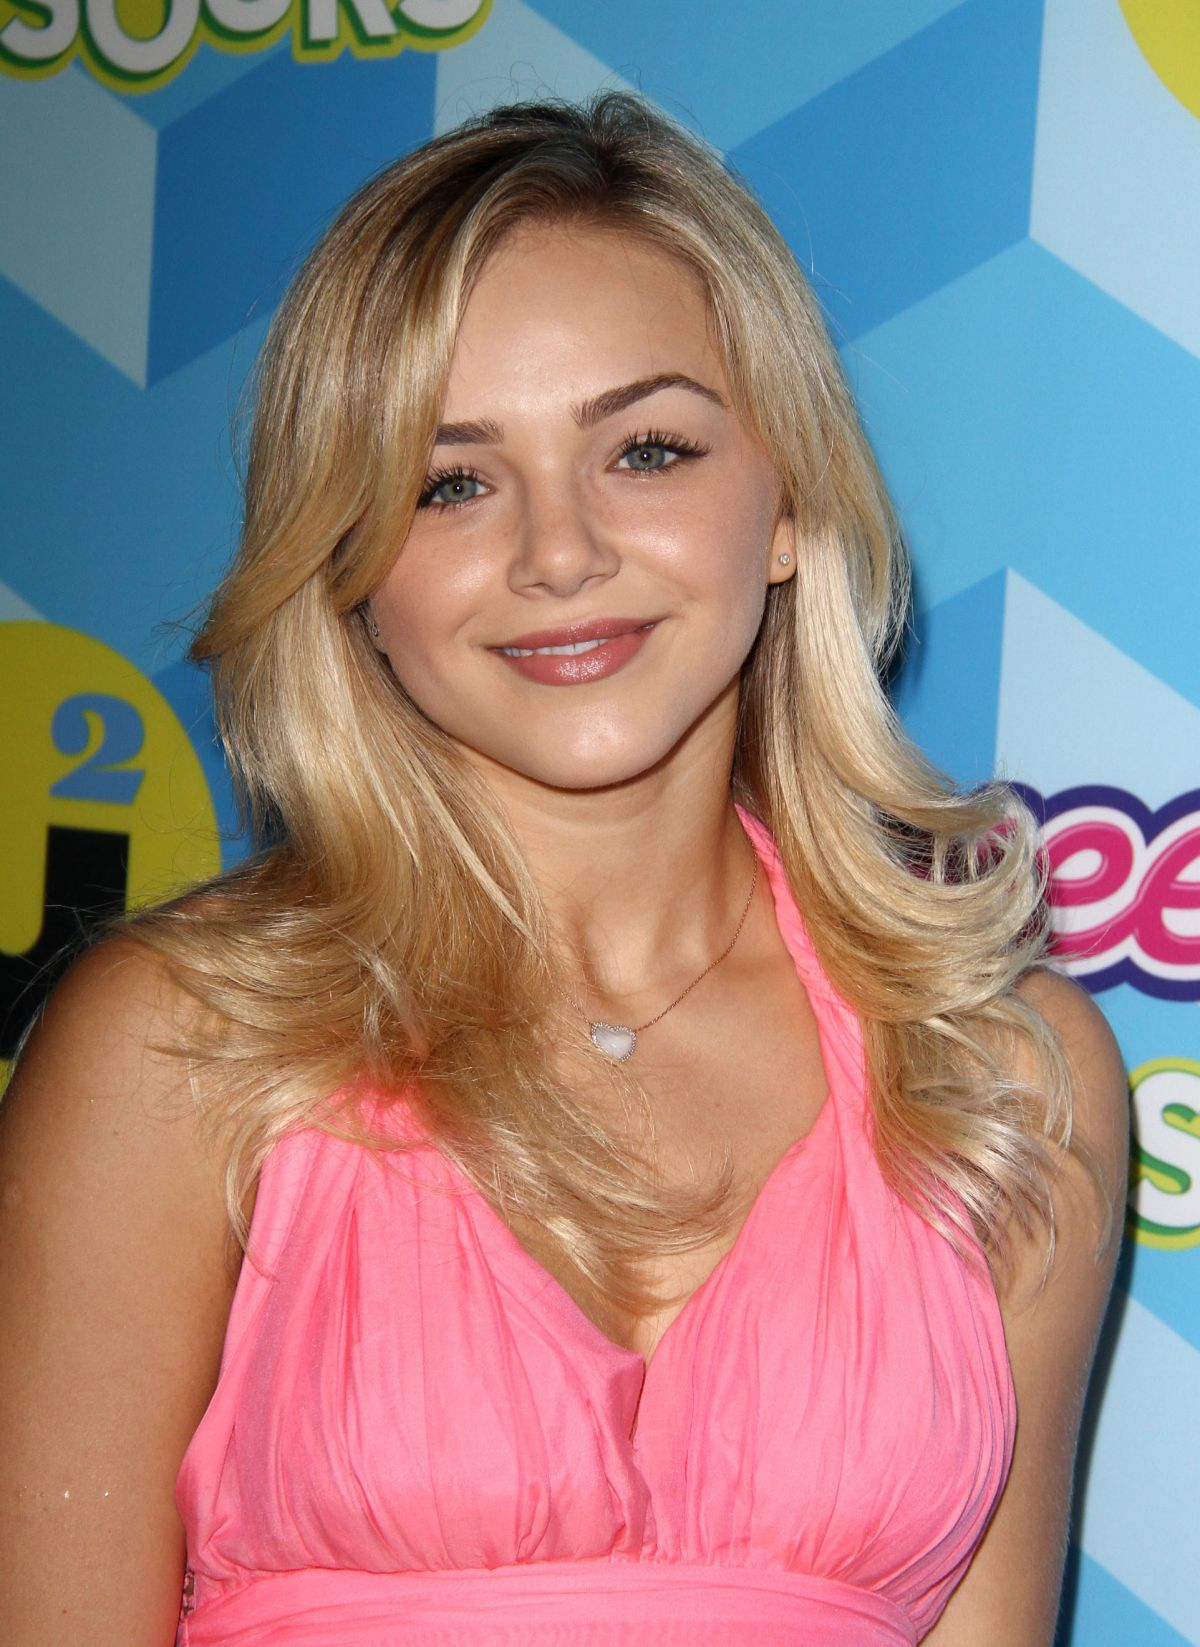 OANA GREGORY at Just Jared